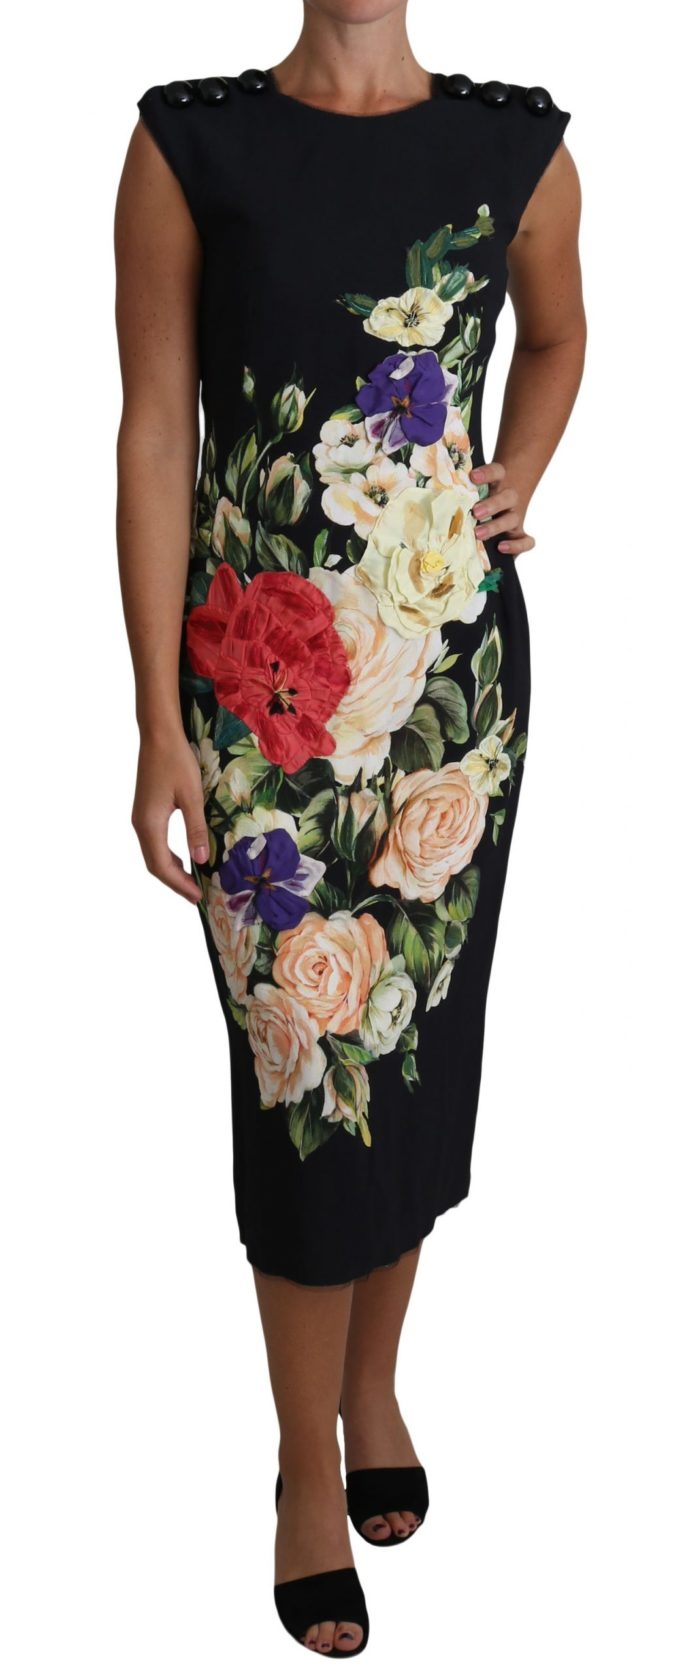 634921 Floral Print Viscose Midi Gown Buttons Dress.jpg